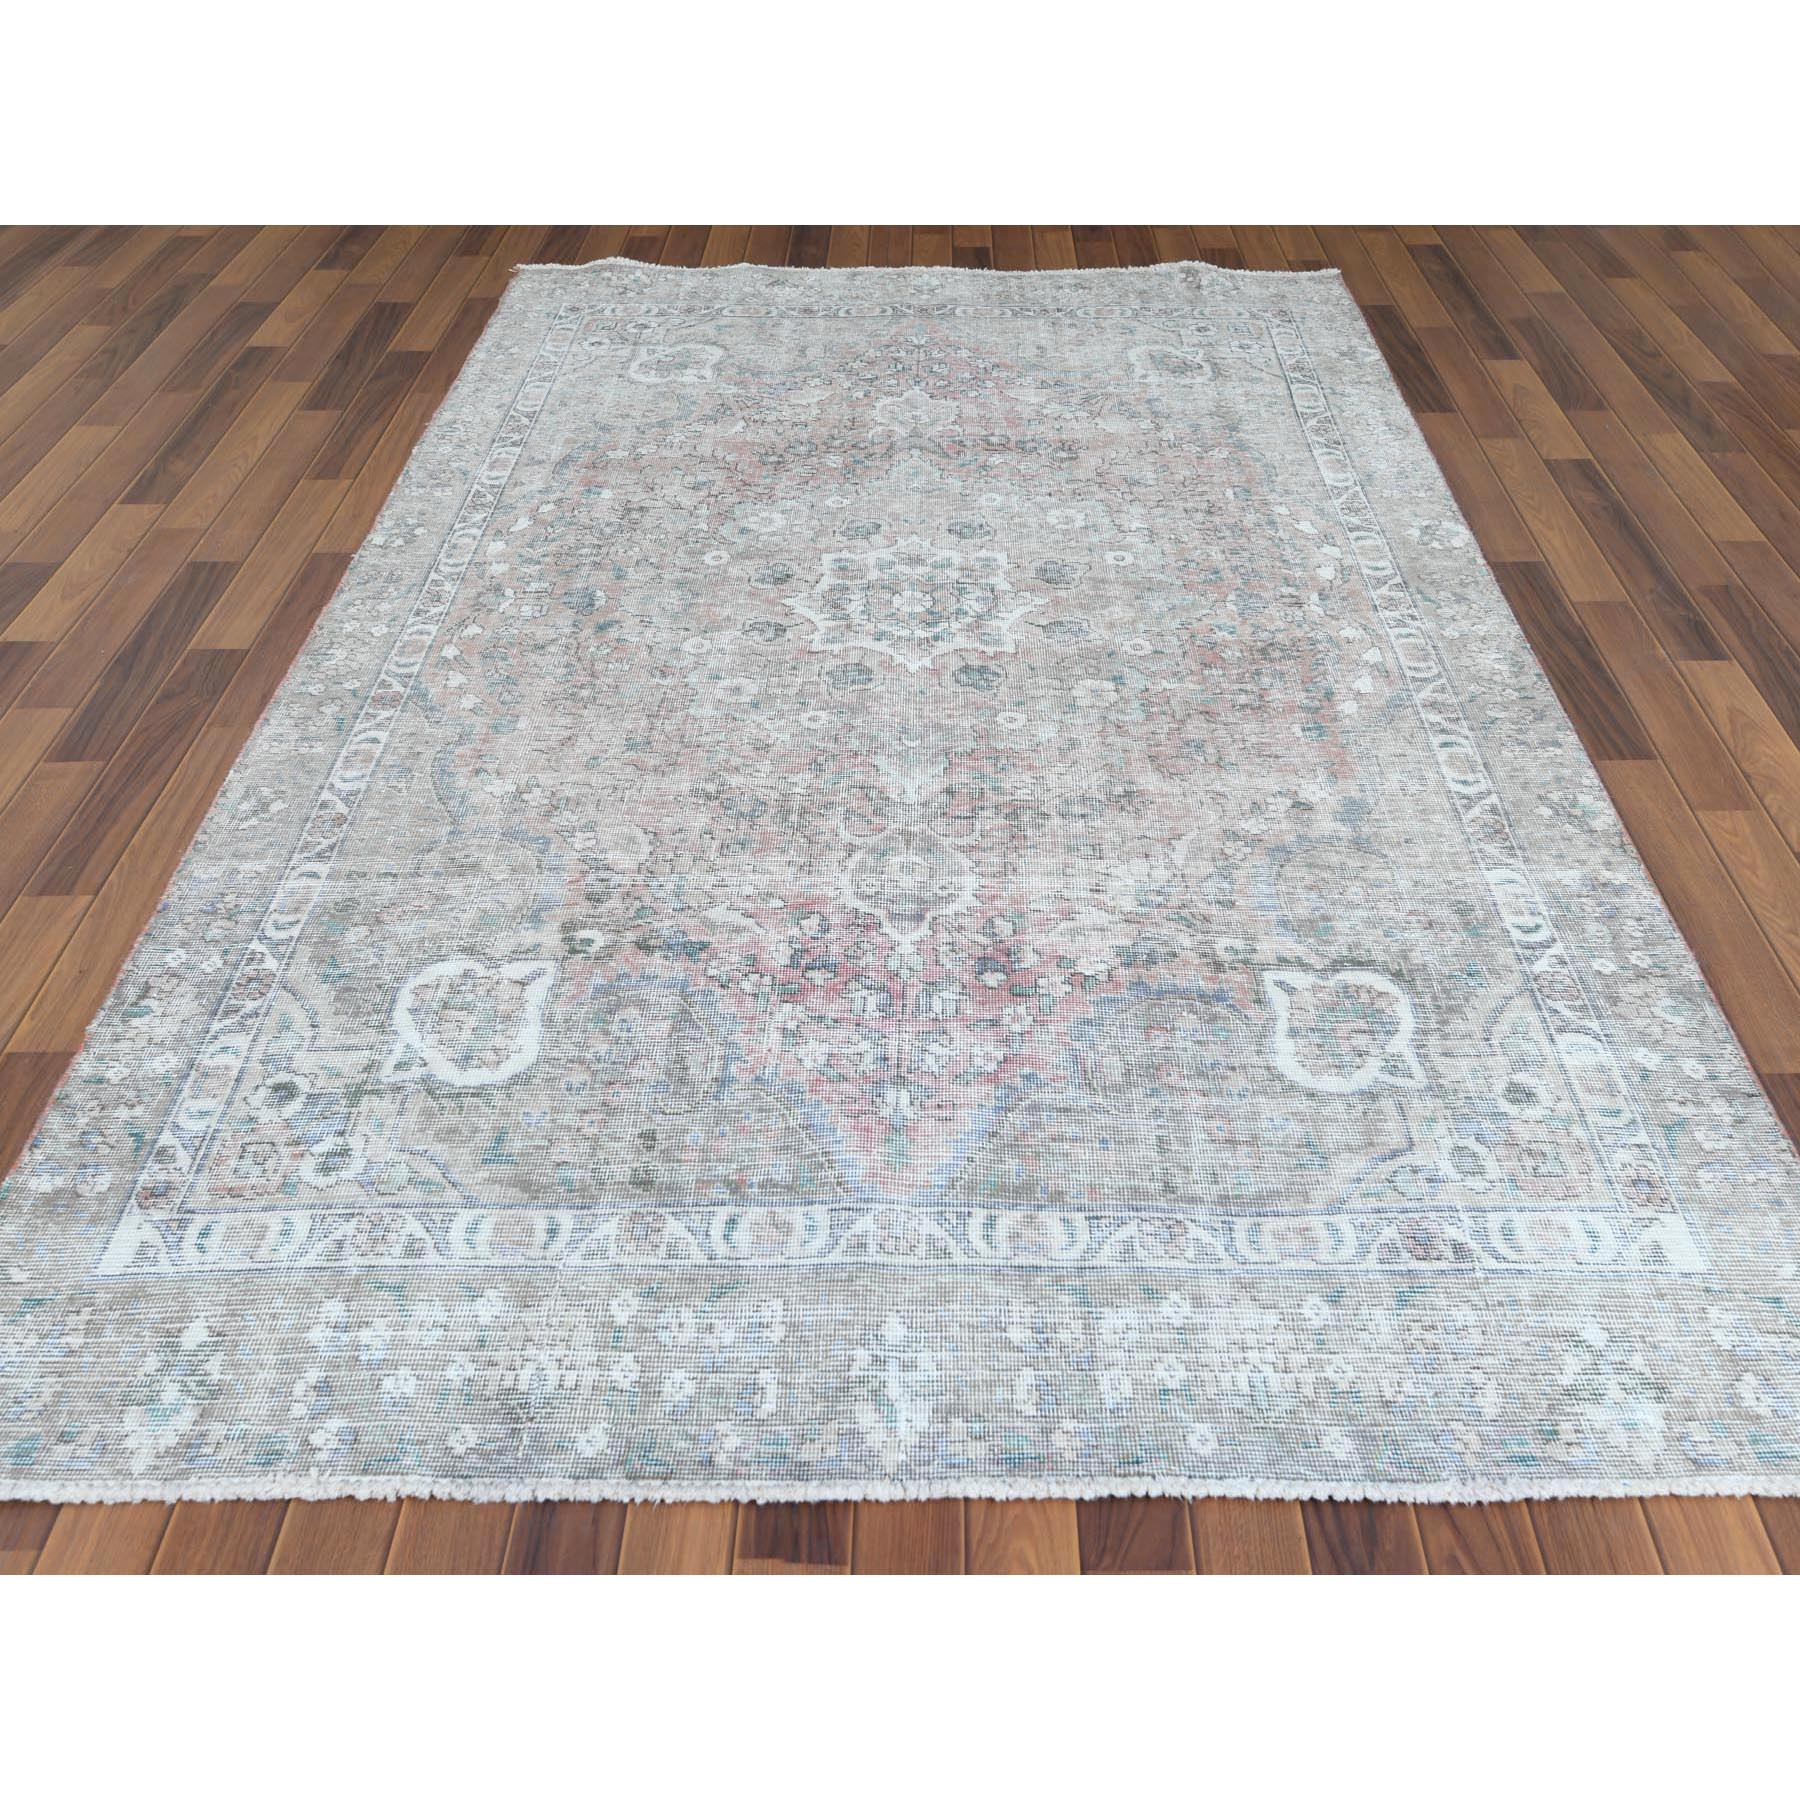 "5'10""x9'2"" Red Clean Organic Wool Bohemian Worn Down Semi Antique Persian Tabriz Medallion Design Hand Knotted Oriental Rug"